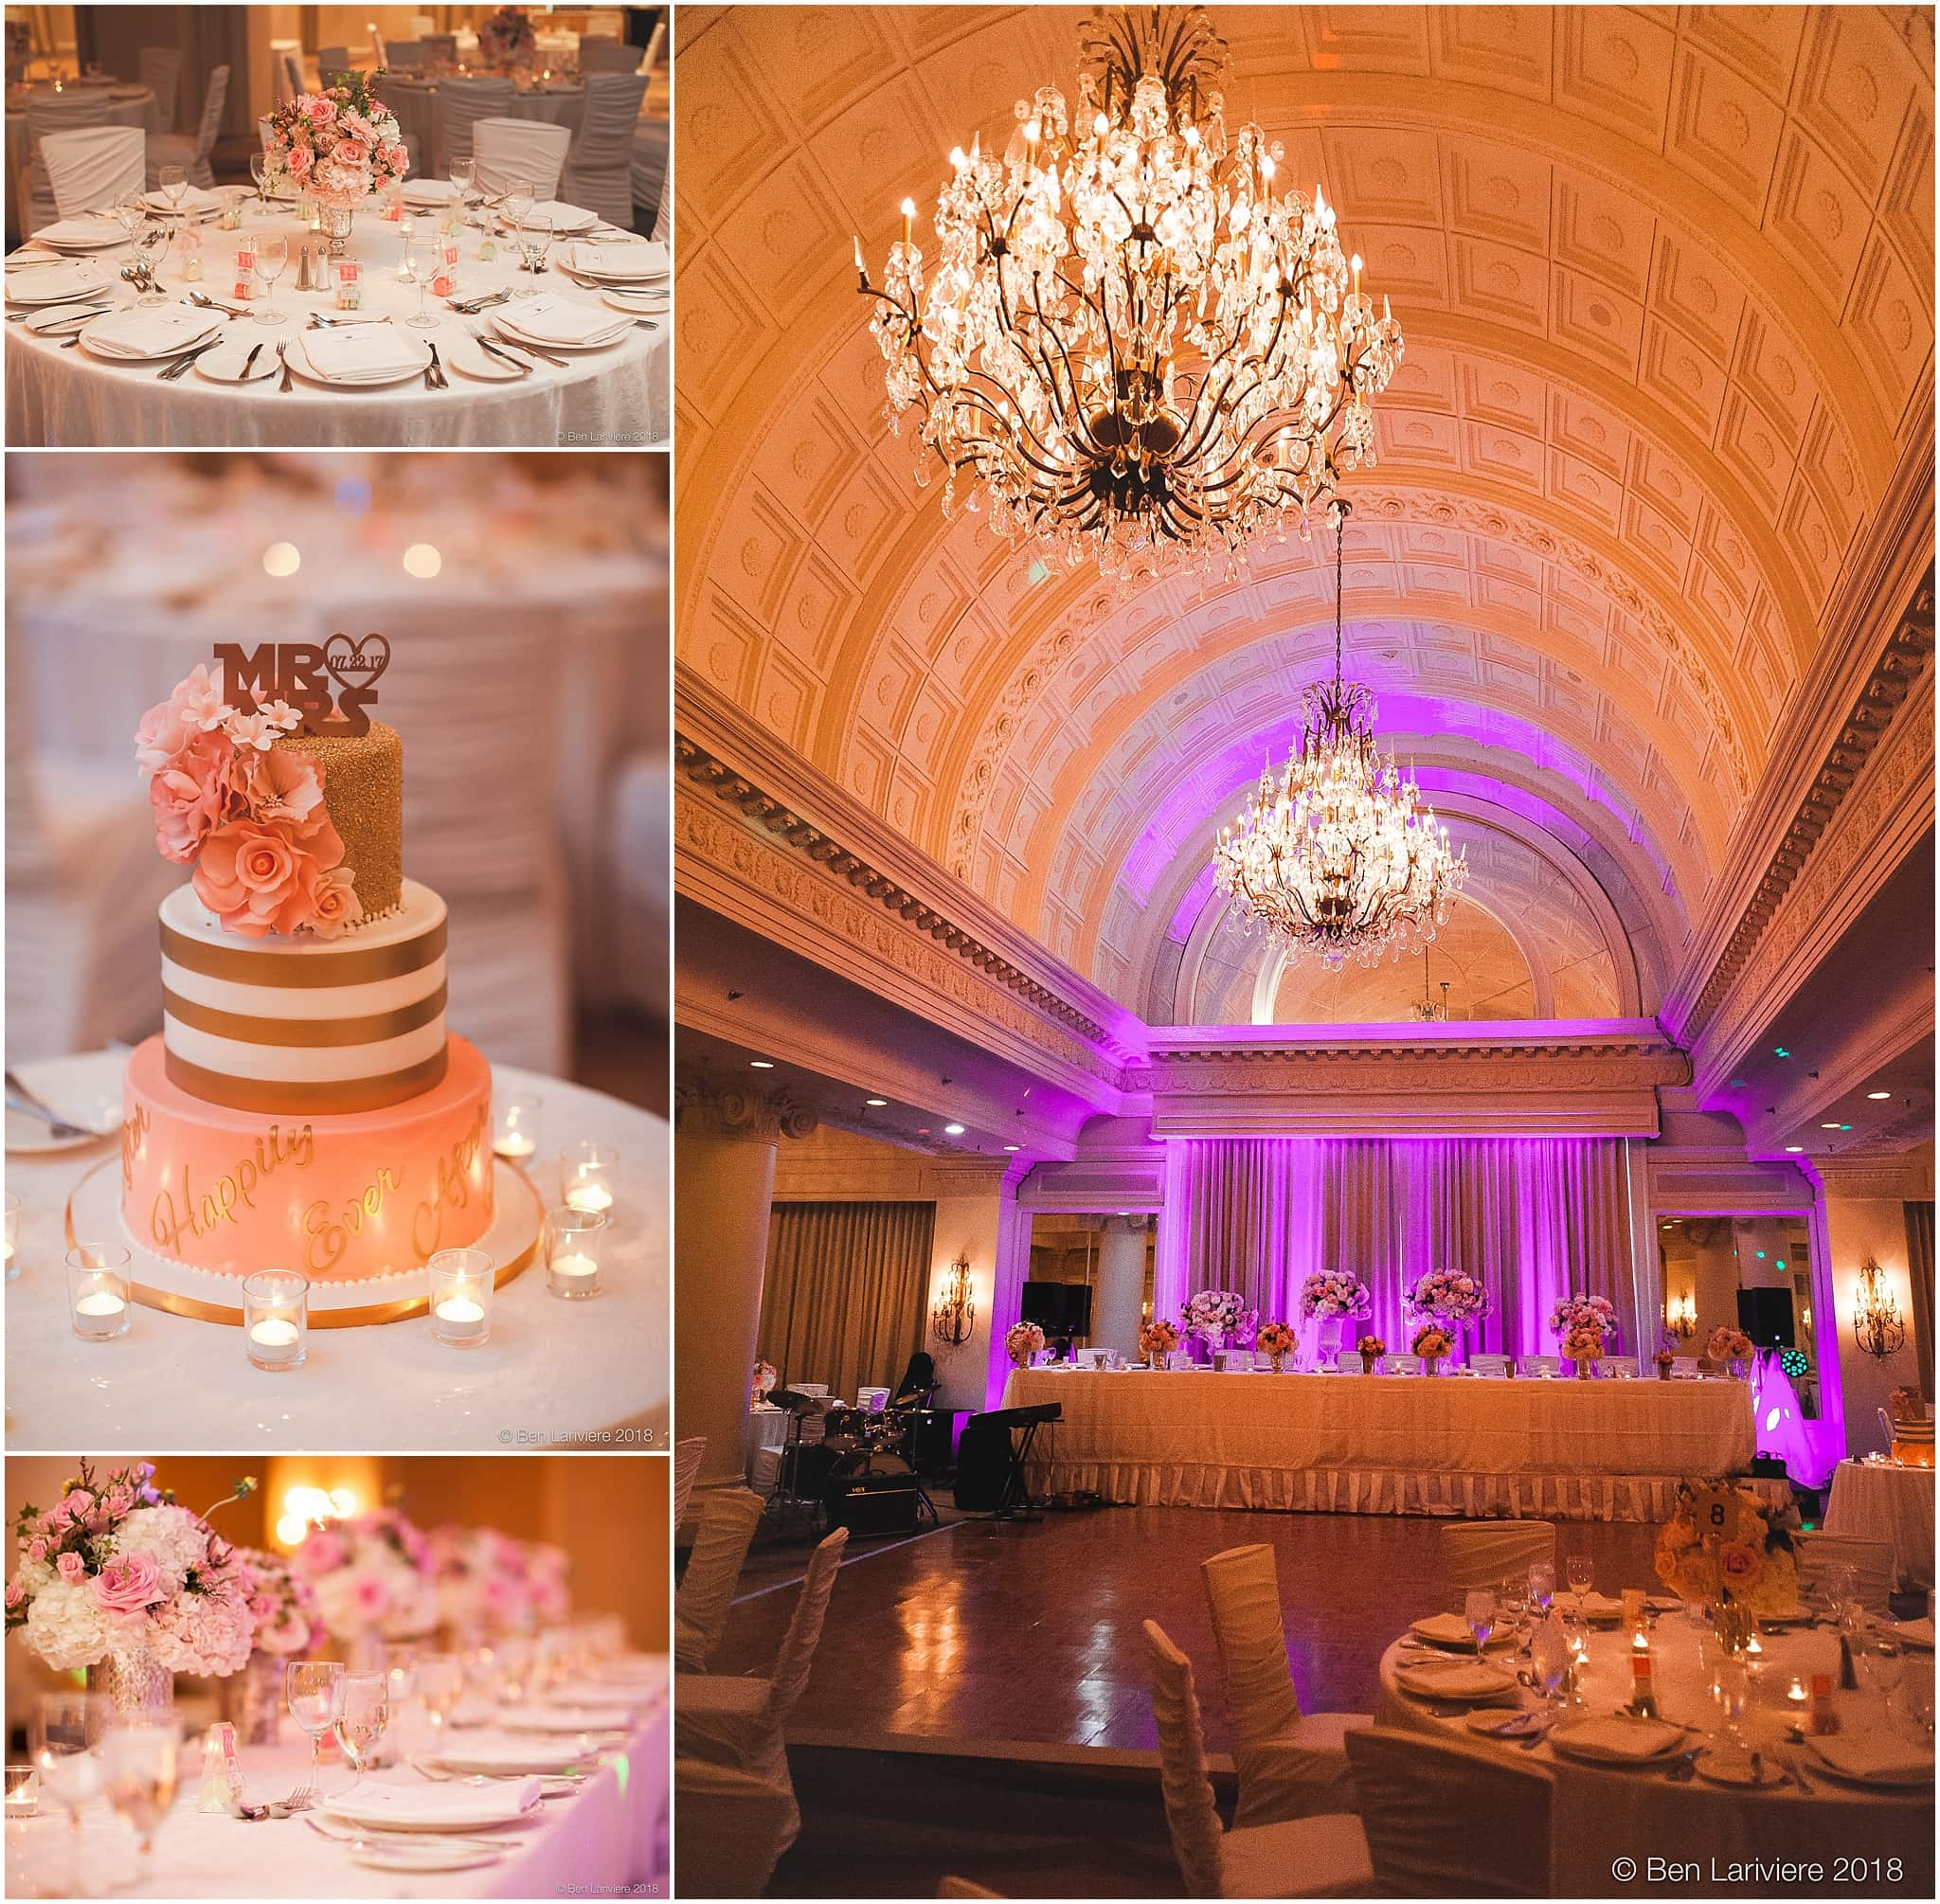 wedding cake and reception decor details in vanity fair ballroom, omni king edward hotel